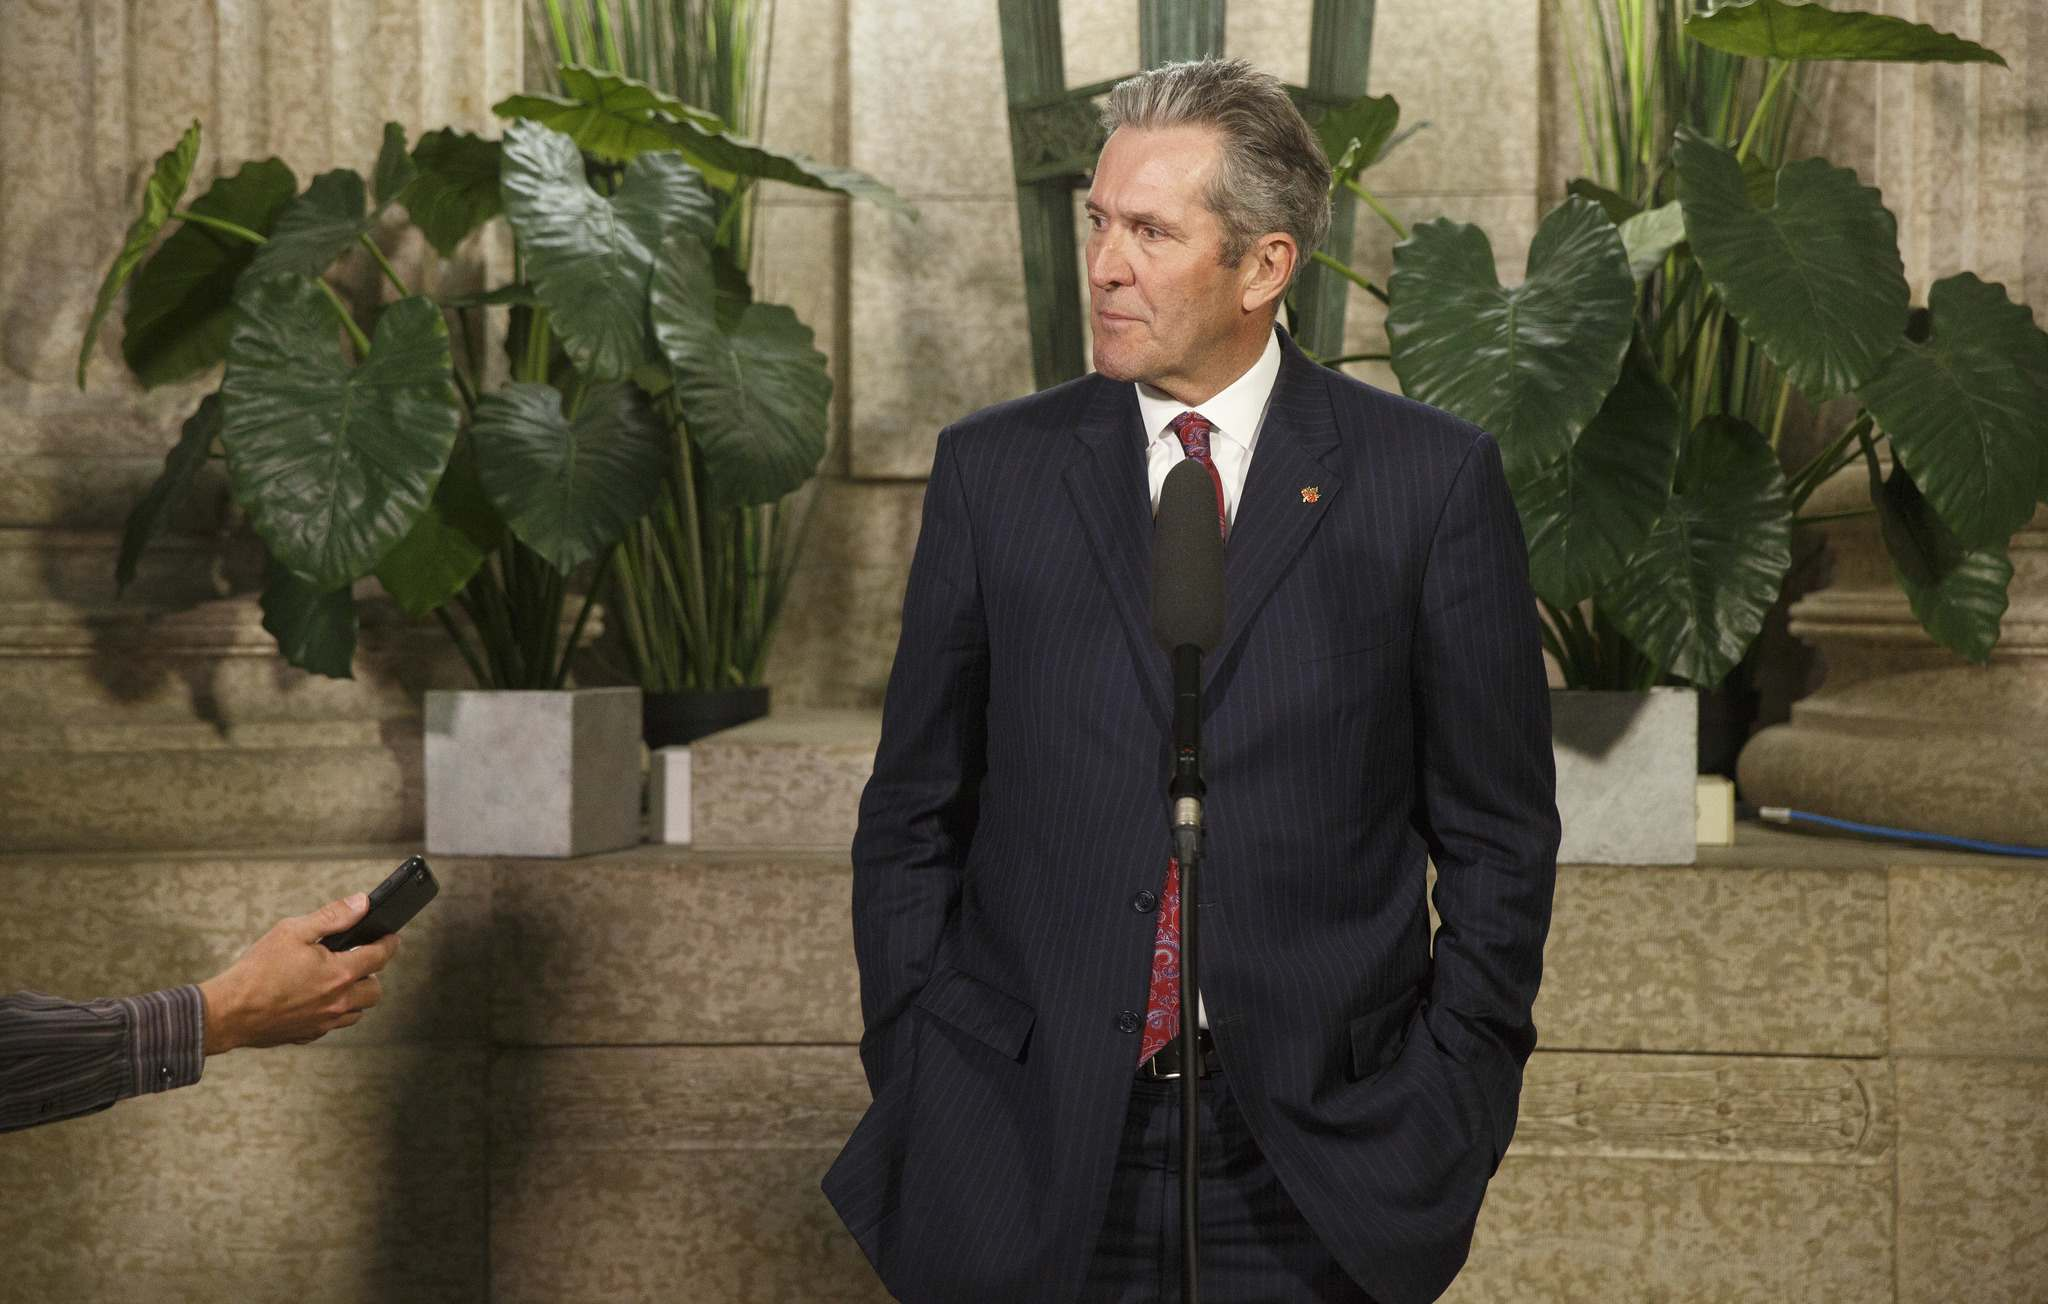 It has been a non-stop torrent of tough love for the unions from Premier Brian Pallister. (Mike Deal / Free Press files)